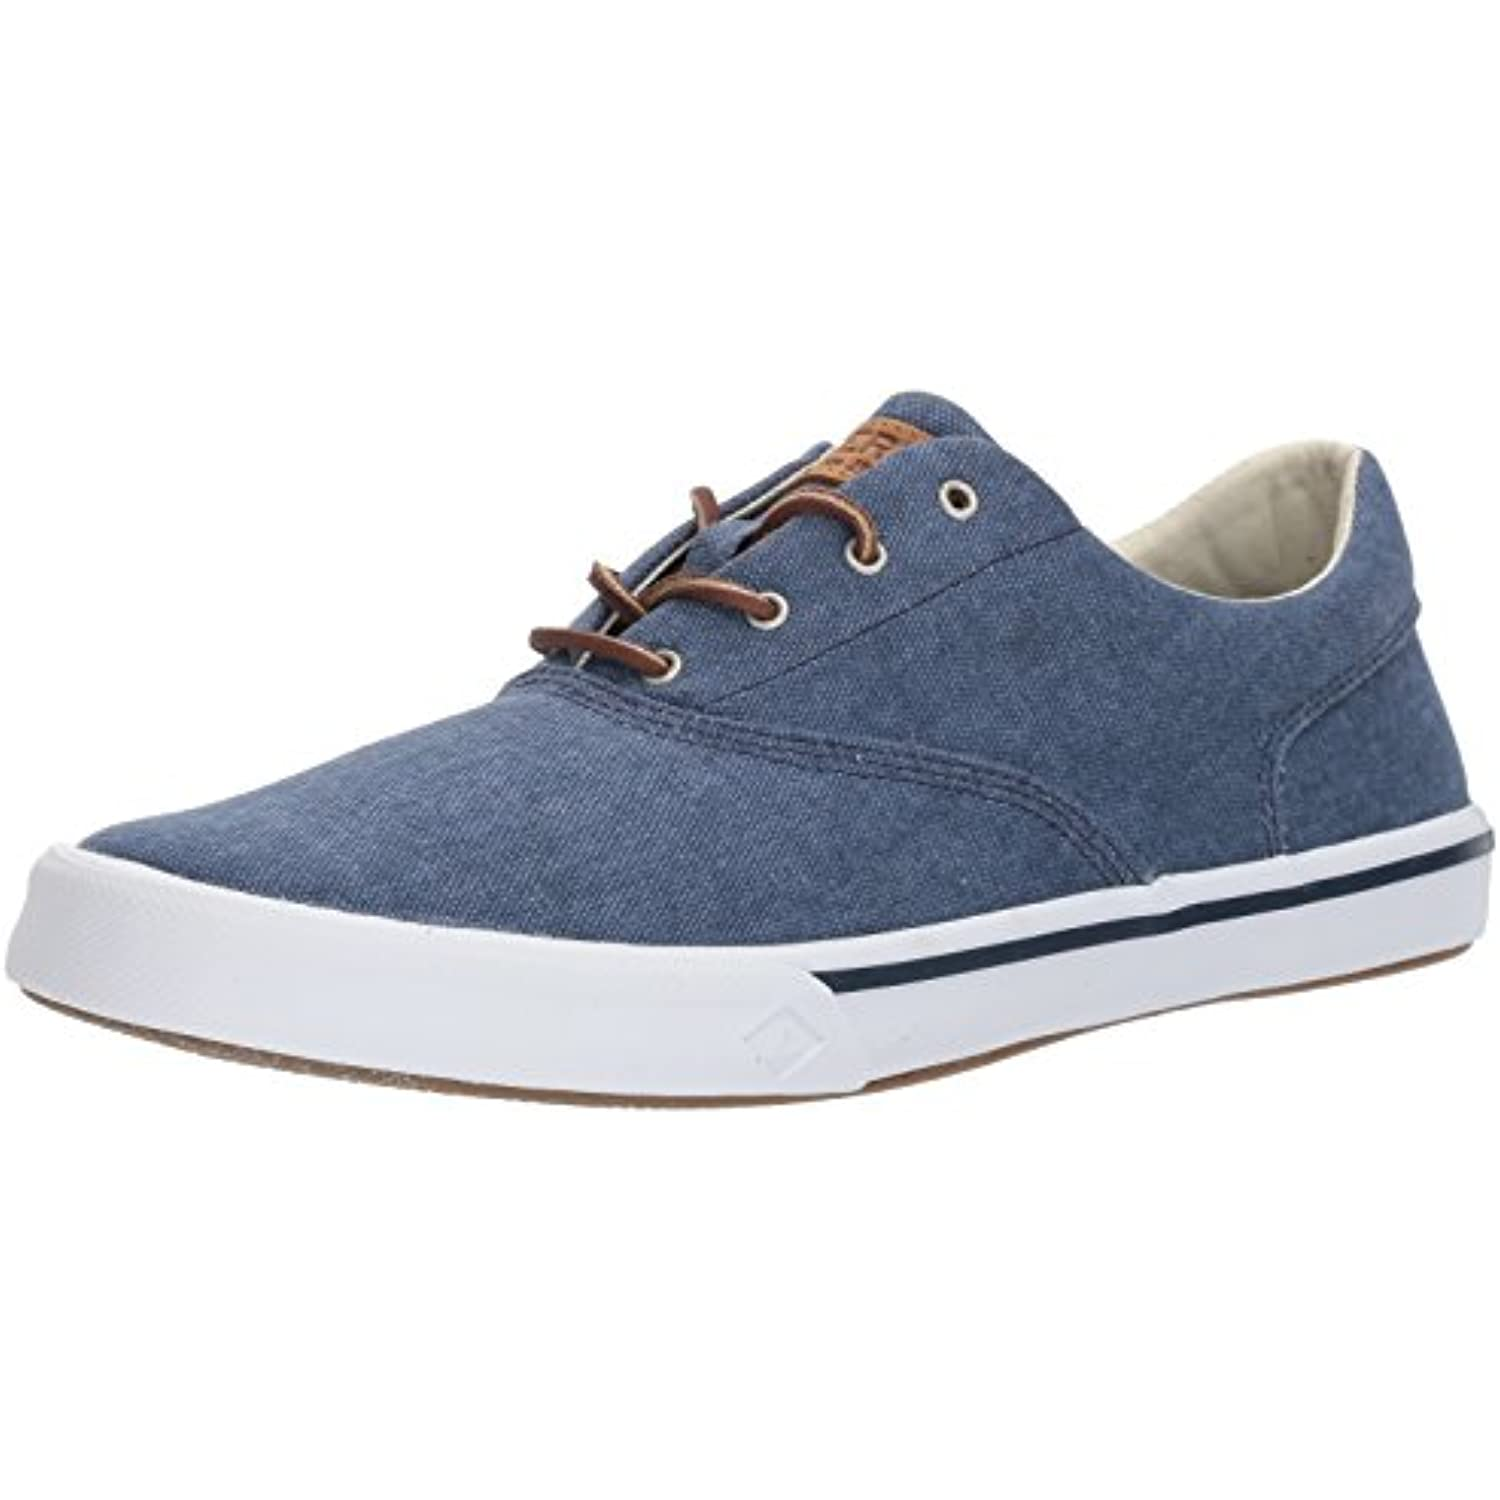 Sperry Striper II CVO Washed Parent Navy, Sneaker Uomo Parent Washed 267783